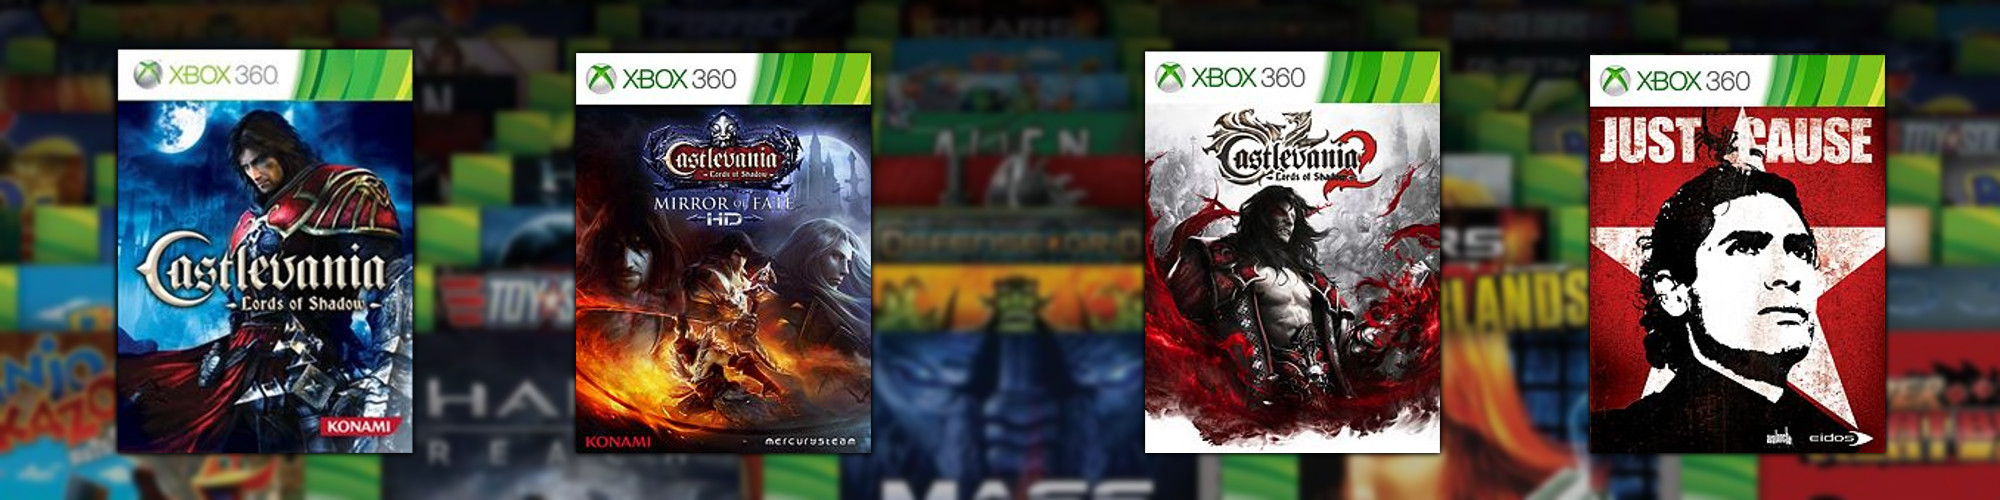 Just Cause, Castlevania: Lords of Shadow, Castlevania: Lords of Shadow – Mirror of Fate HD, Castlevania: Lords of Shadow 2